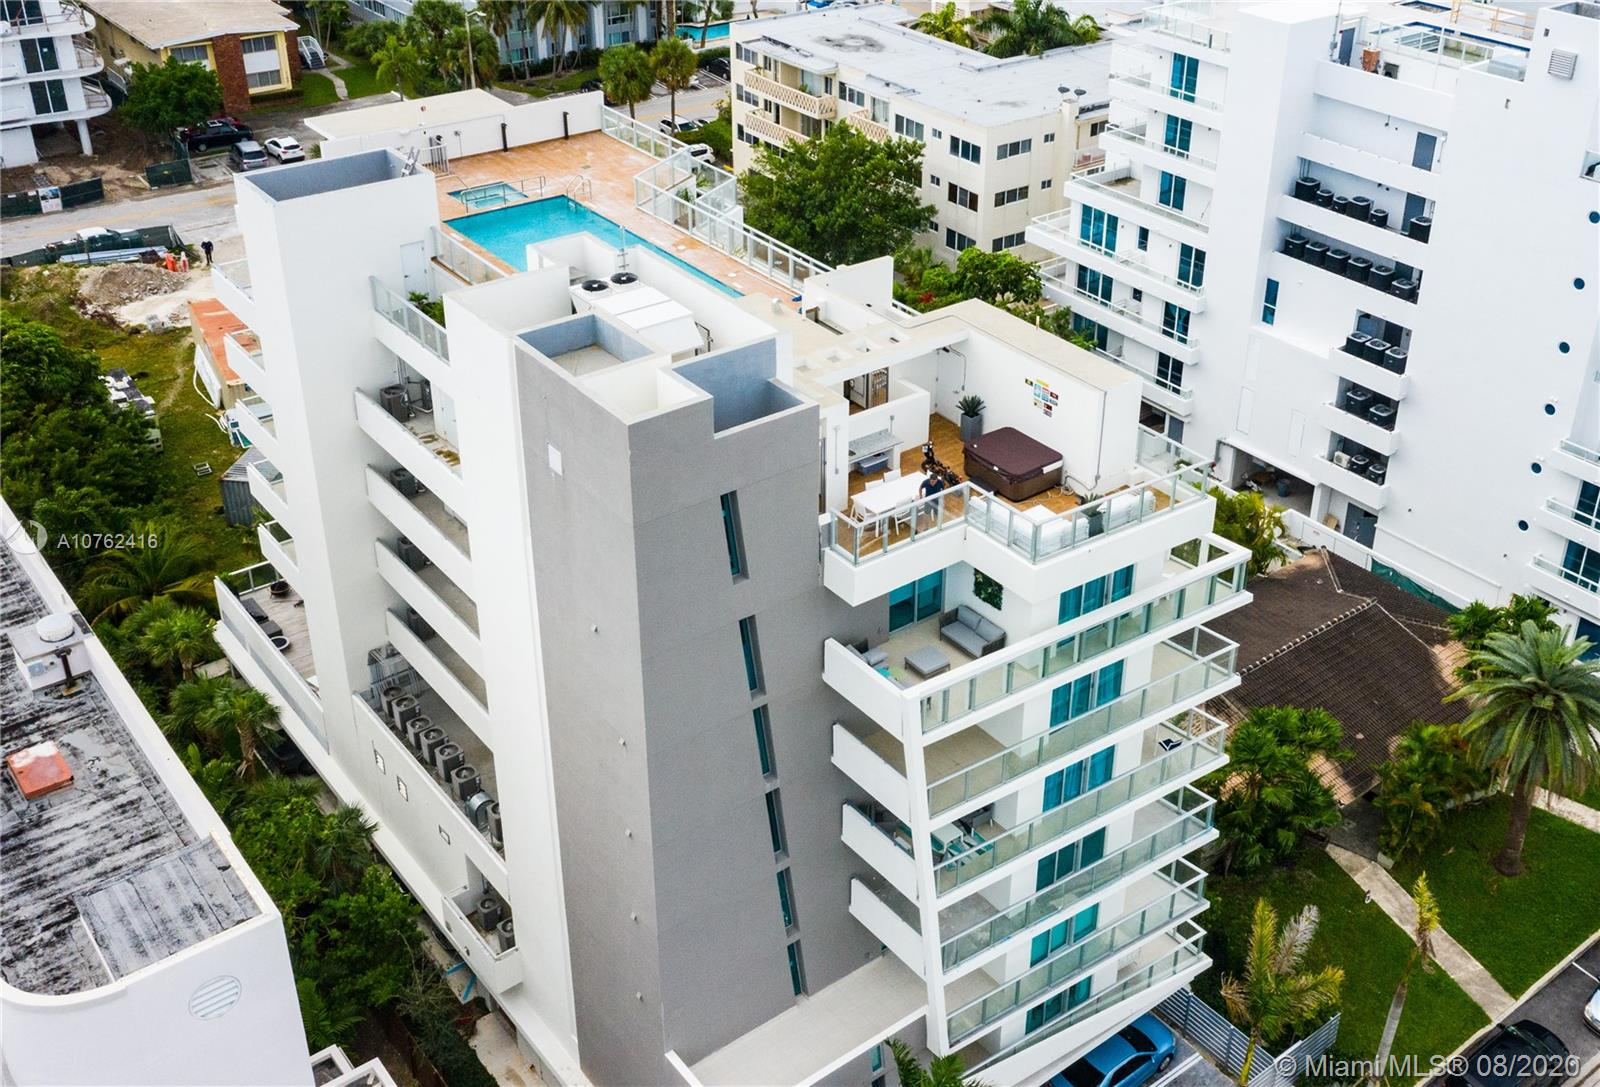 NO RENTAL RESTRICTIONS Brand new, never lived in 946 sqft, a furnished condo in Bay Harbour Island. This boutique building with refined finishes has only 17 residences, rooftop pool, electronic concierge, automated door locks and blinds, smart thermostat. Two-bedroom two full bathrooms, summer kitchen, 2 parking spaces. All rooms with balcony access. Walk to the beach and the prestigious Bal Harbour Mall.